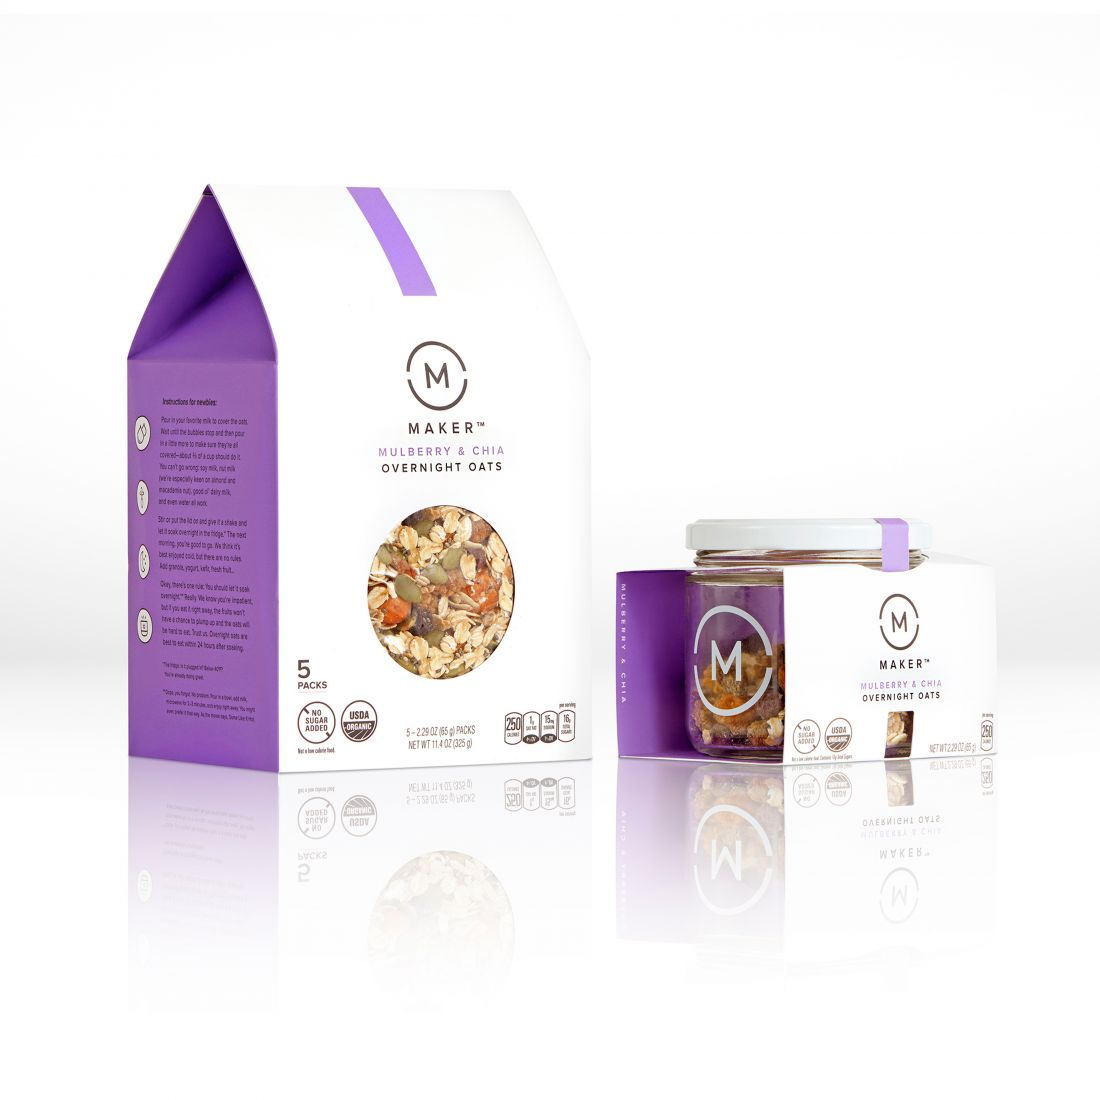 Maker Oats brand packaging by PepsiCo Design and Innovation